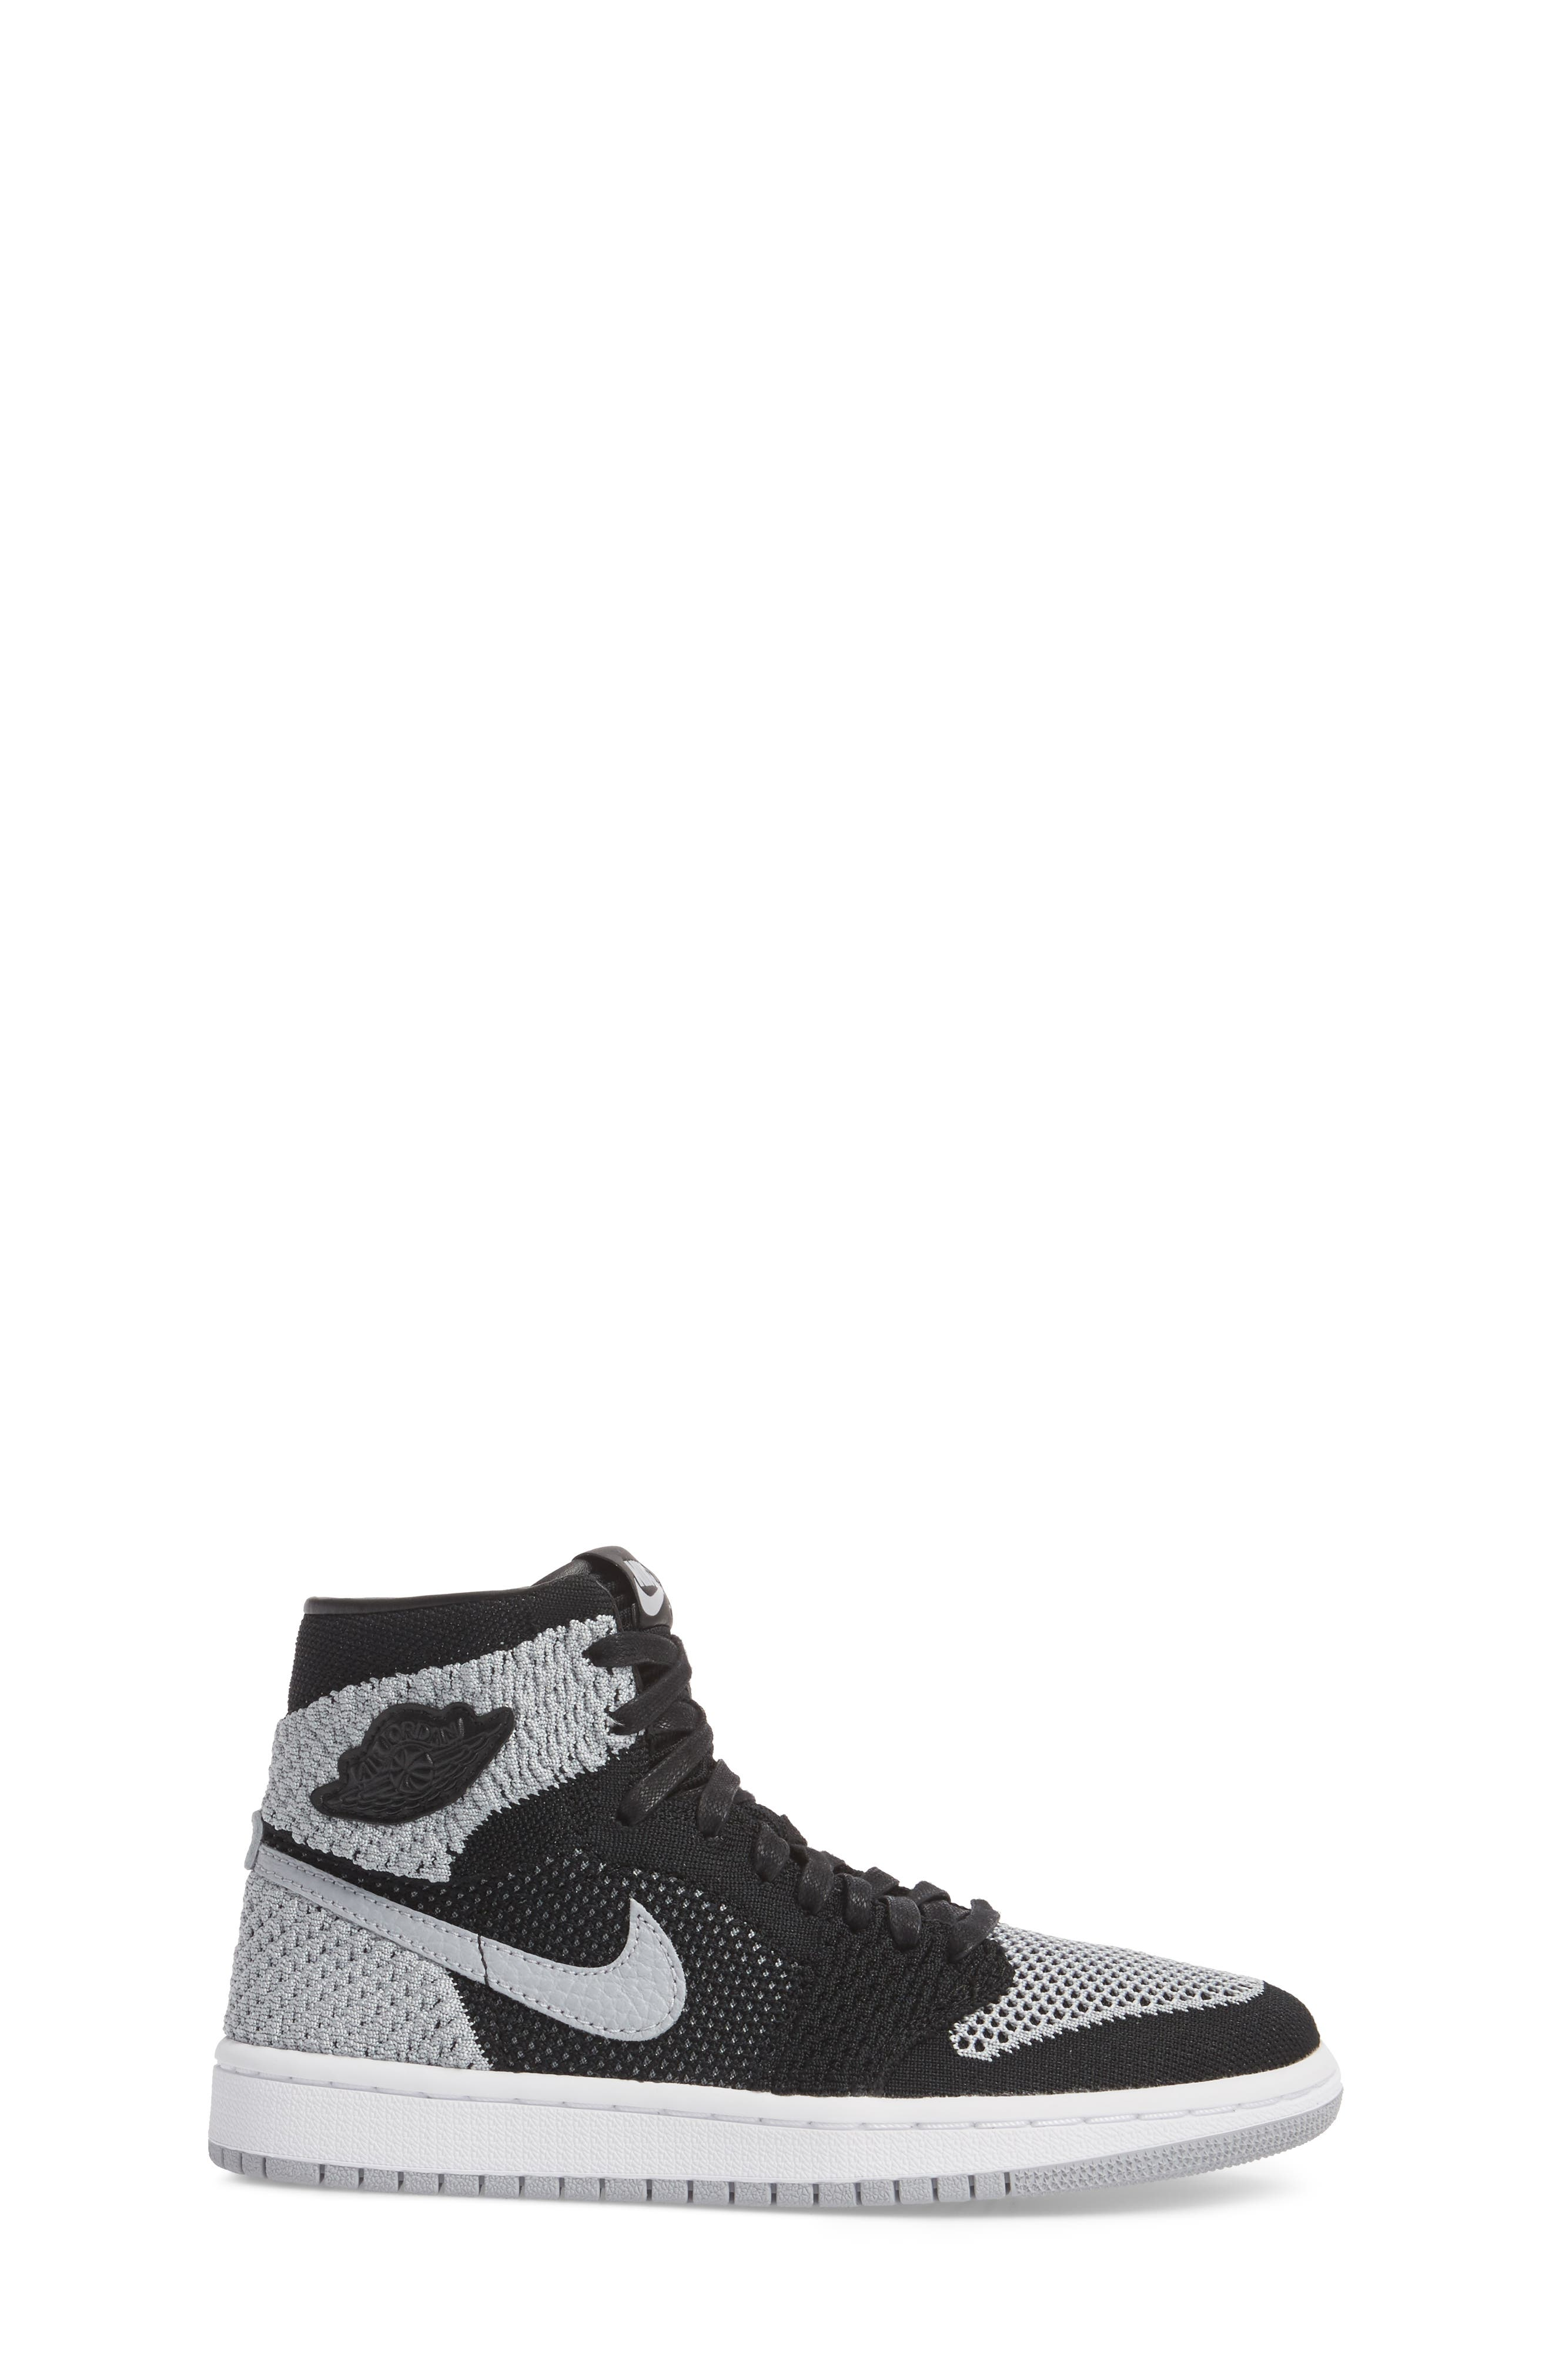 Nike Air Jordan 1 Retro High Flyknit Sneaker,                             Alternate thumbnail 3, color,                             Black/ Wolf Grey/ White